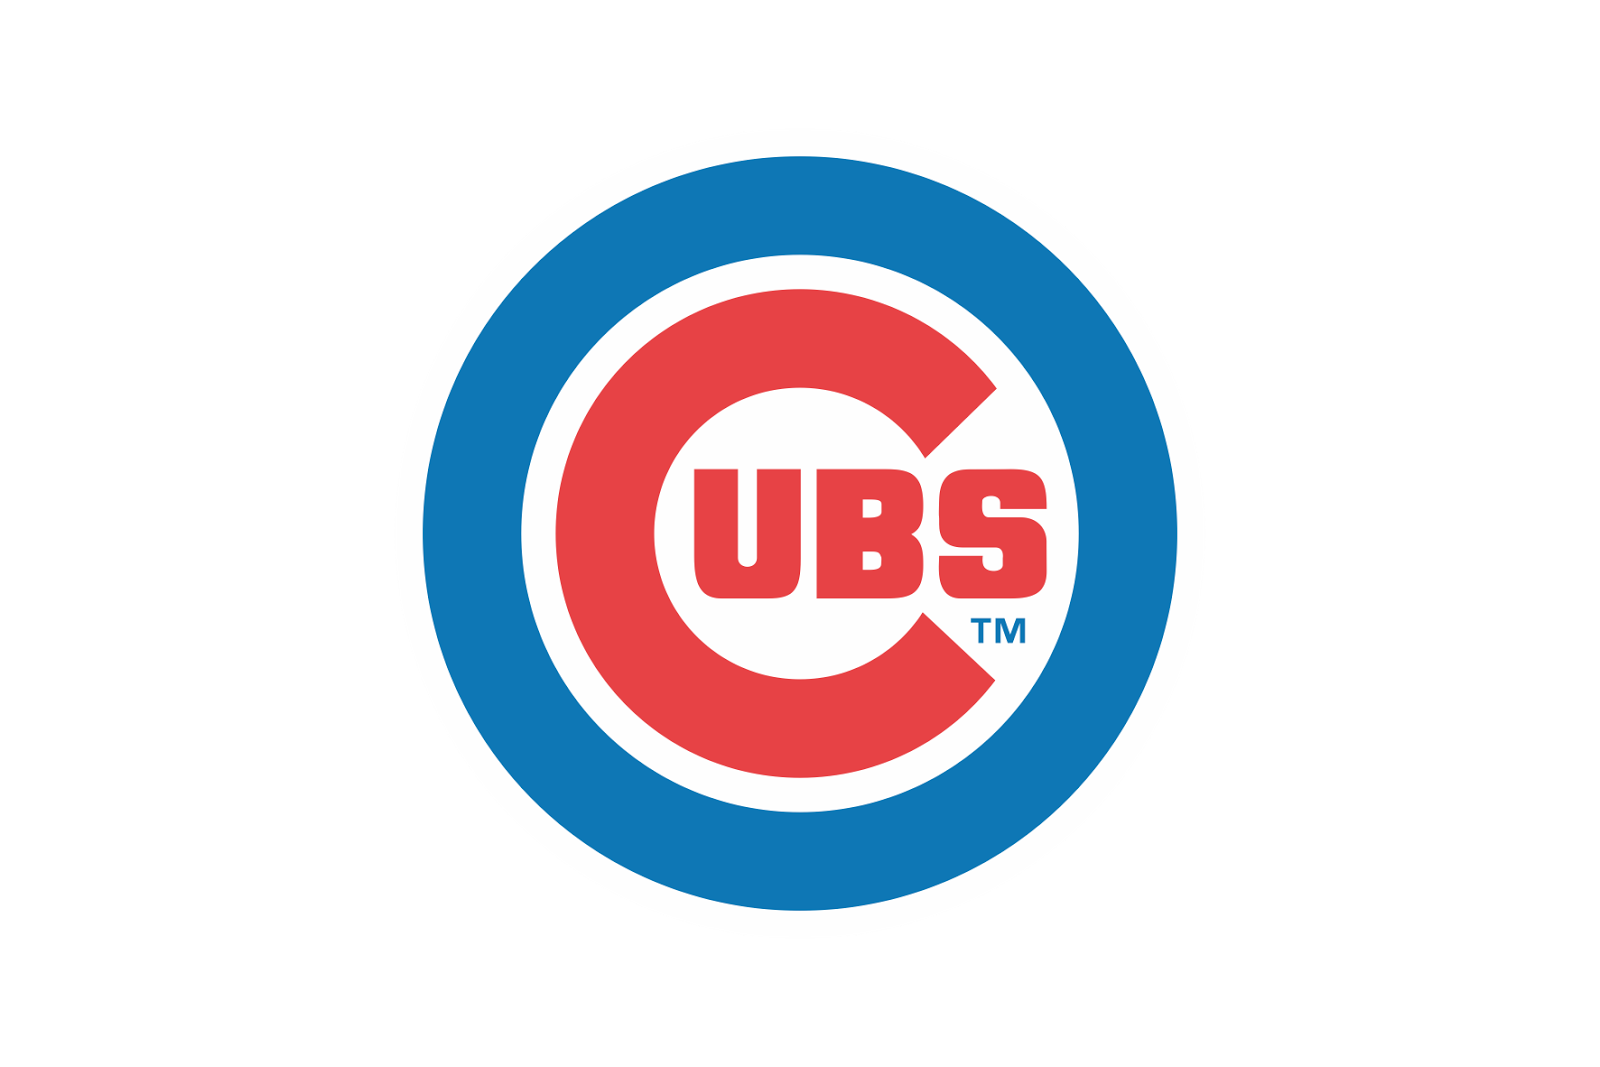 Chicago cubs logo png transparent. Share vector